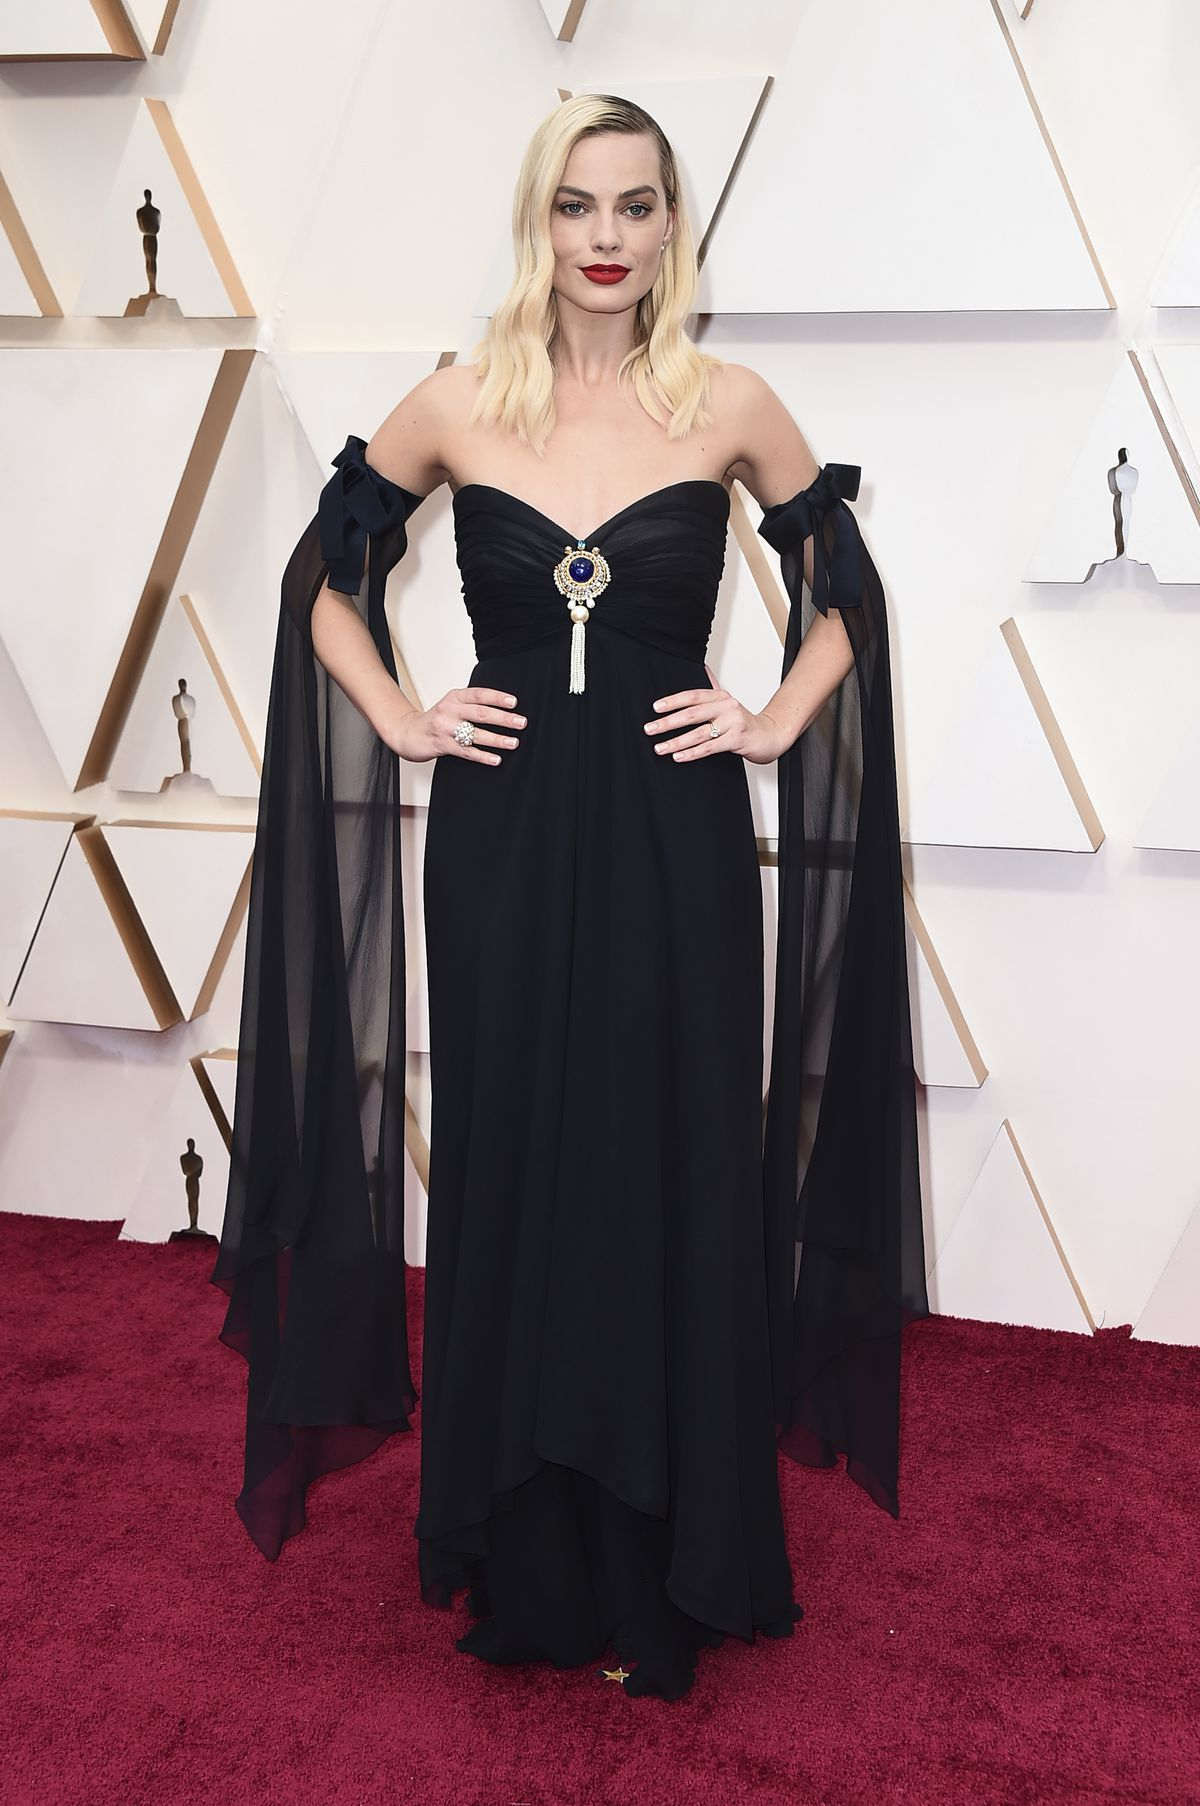 Margot Robbie wears vintage Chanel for her red carpet arrival Sunday night at the Oscars.